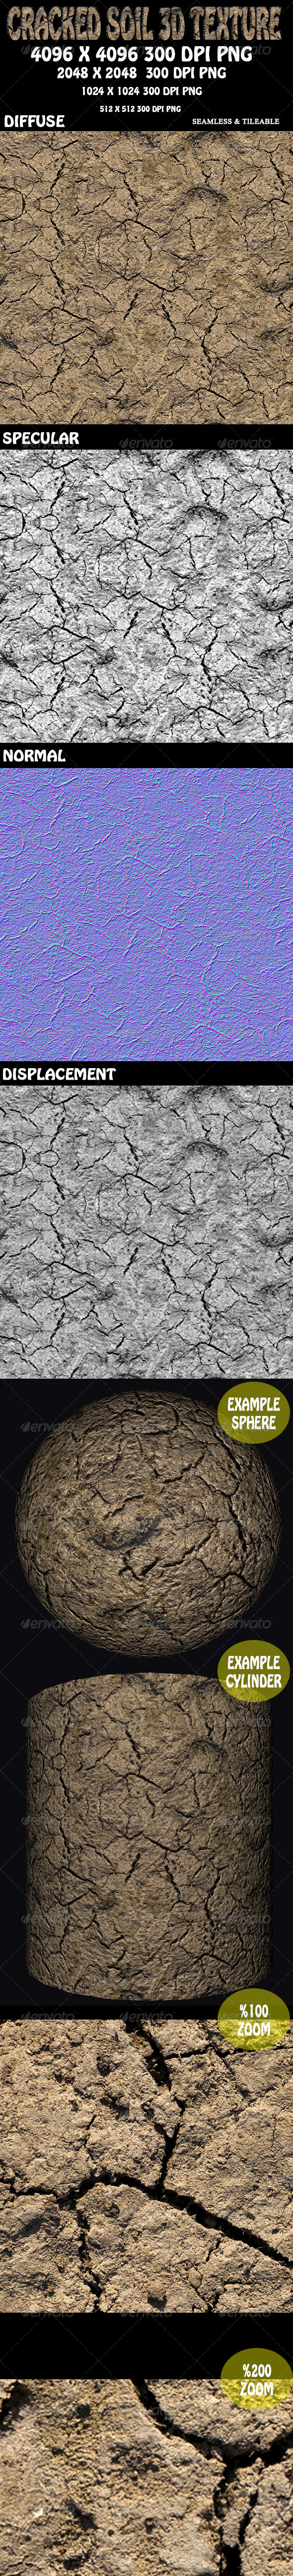 Cracked Soil 1 - 3D Texture - 3DOcean Item for Sale